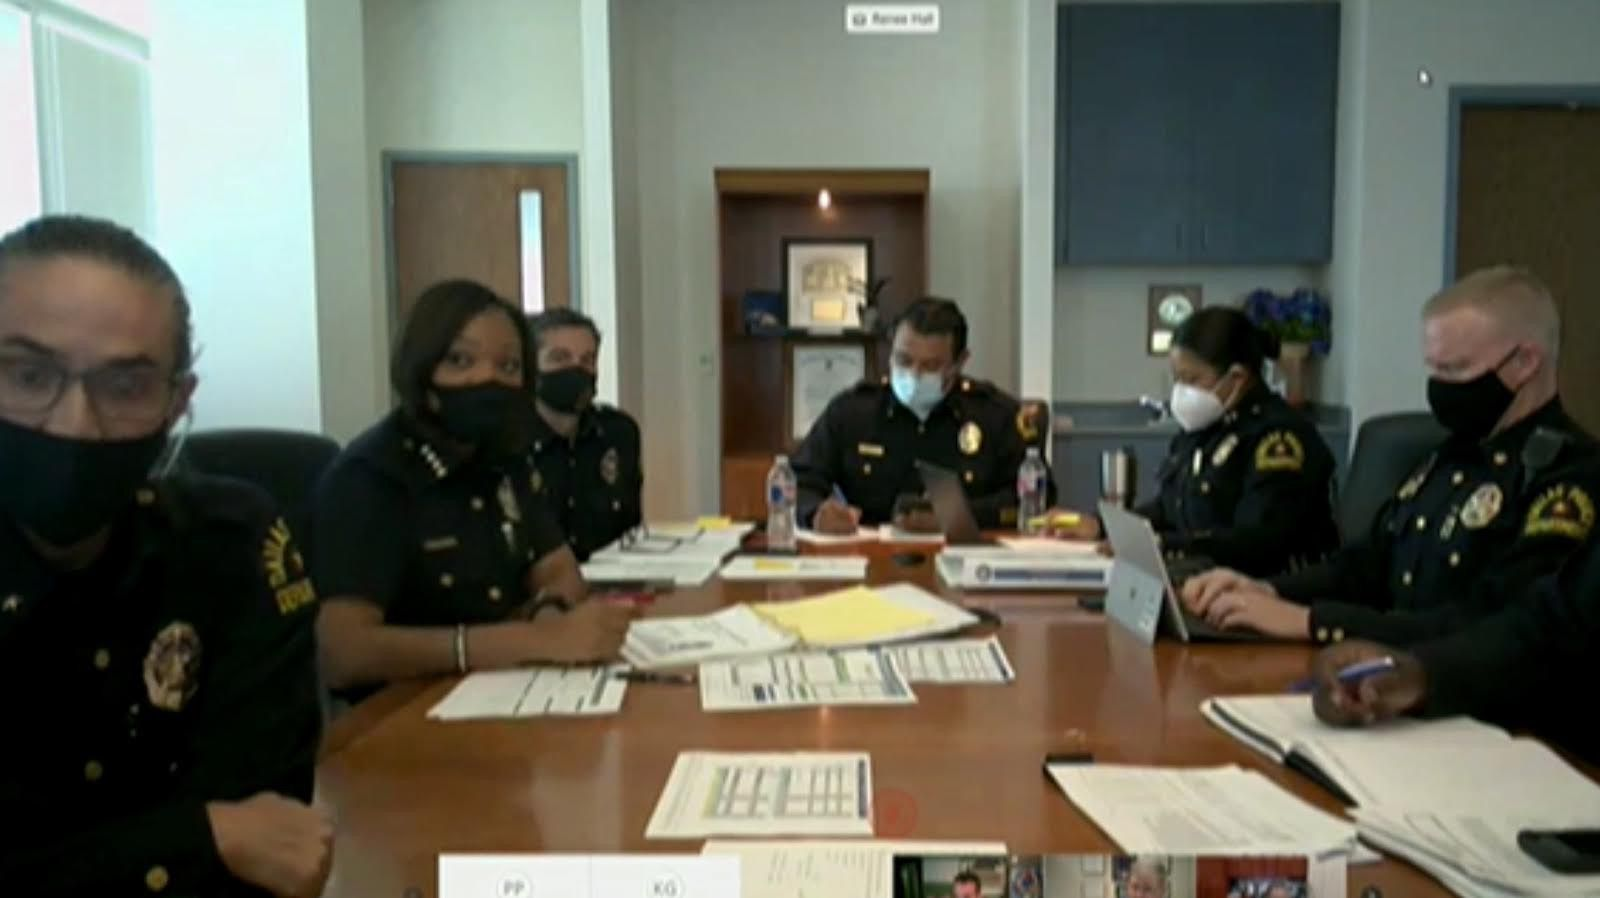 Dallas Police Chief U. Renee Hall (left center) joined other members of the Dallas Police Department to give a violent crime update during the City Council's Public Safety Committee Meeting on Monday, Aug. 10, 2020. (Screen grab via video conference)